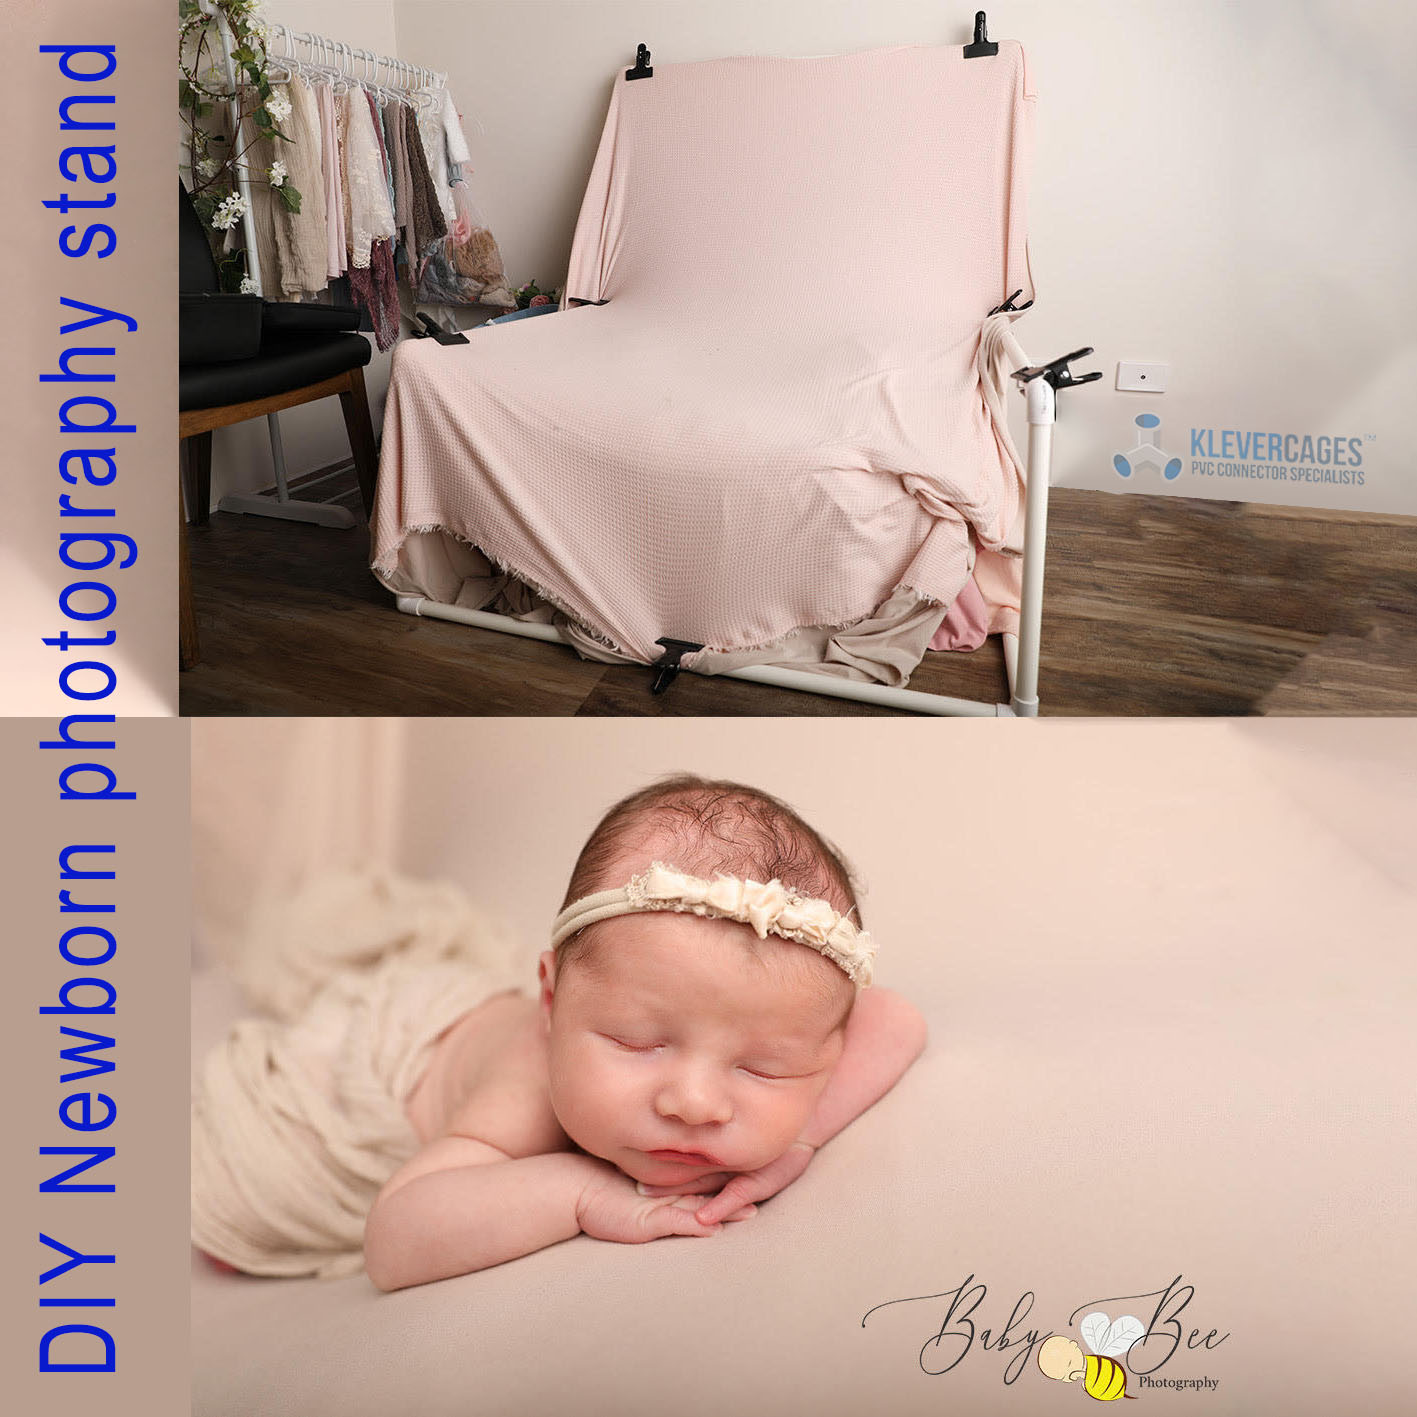 Make your own Newborn photography props including a newborn photgraphy stand built with PVC connectors and pipe with a beanbag and a sheet covering